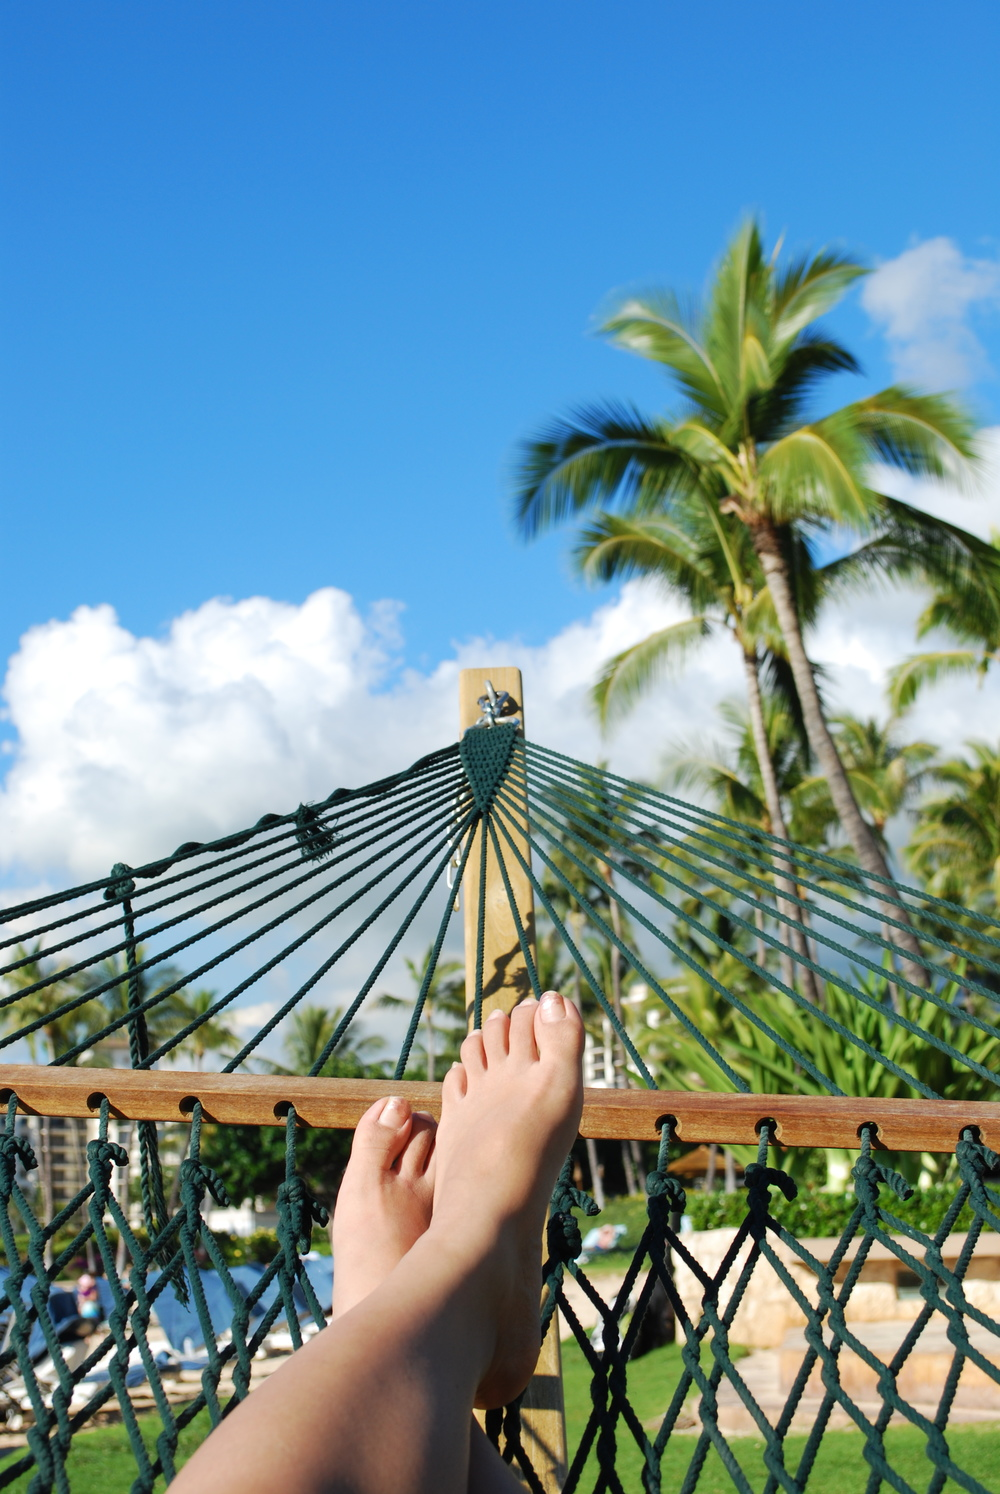 Ko Olina Resort, Oahu | I, of course, took some time to relax on a hammock near the beach.